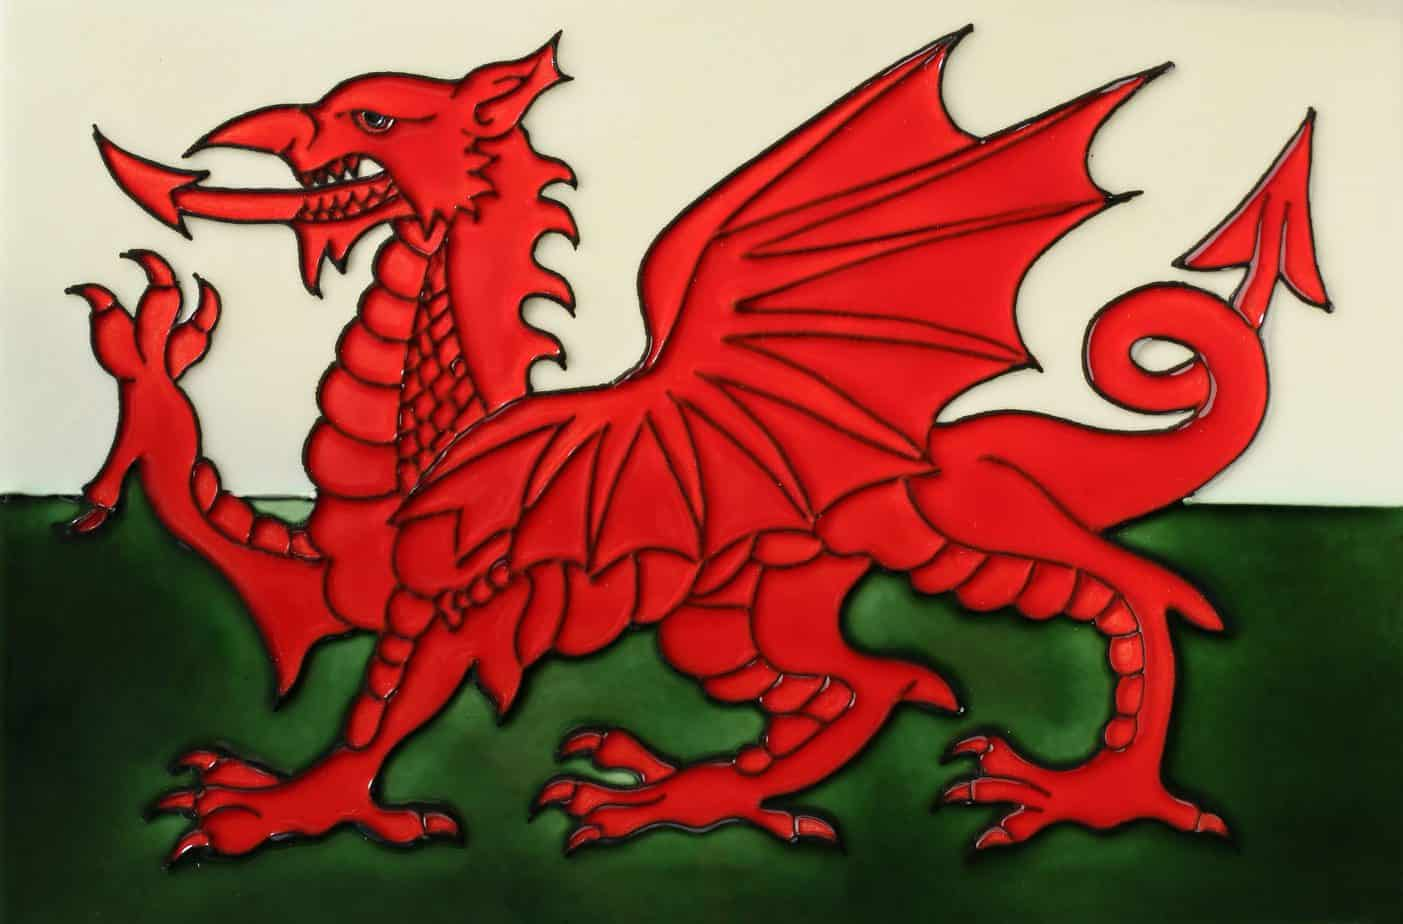 Welsh Dragon 8×12 (153282)